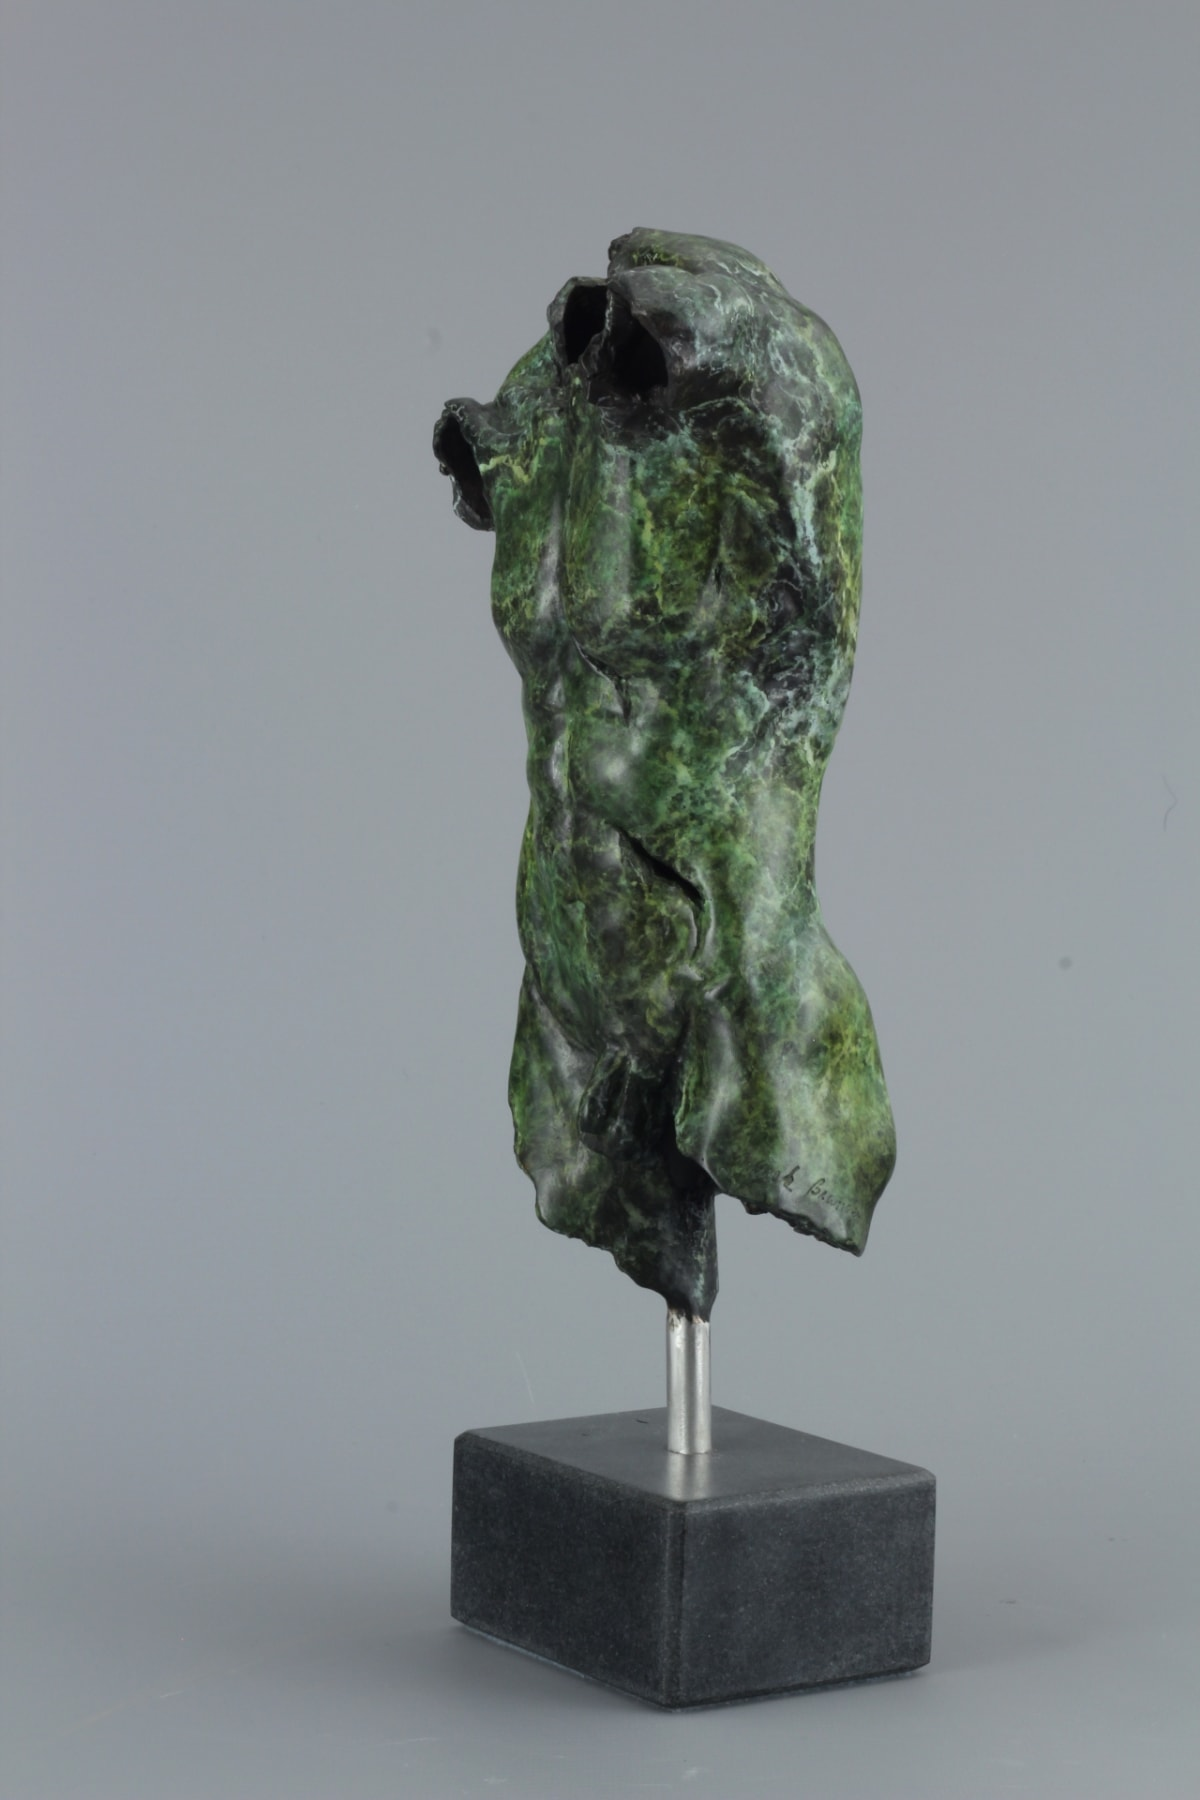 Mirek Brandejs Small Male Torso, 2018 Bronze Sculpture 35 x 11 x 8 cm 13 3/4 x 4 3/8 x 3 1/8 in Edition 1 of 30